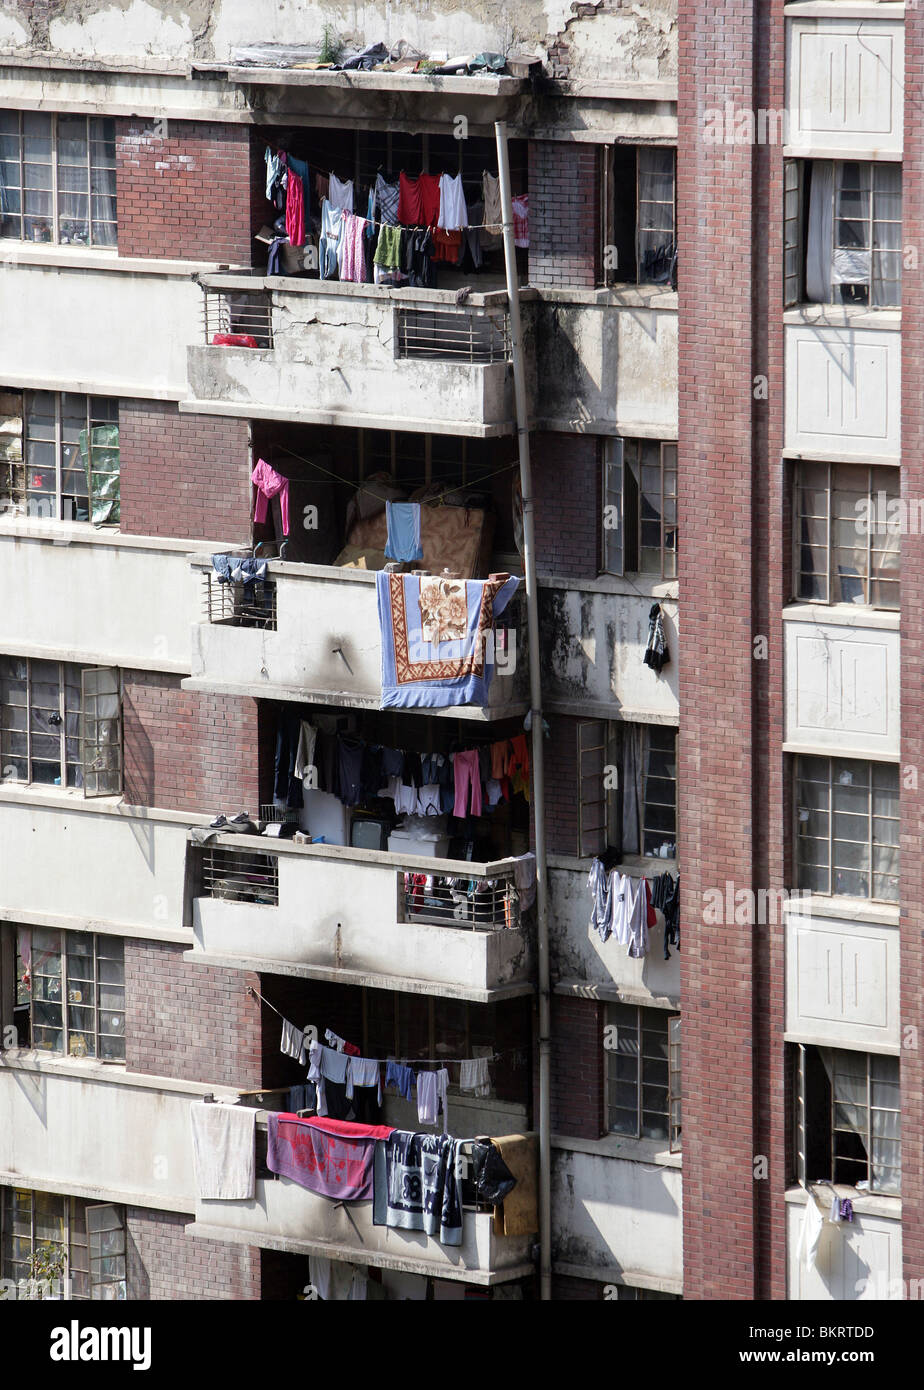 Windows in dwelling-houses in the district Hillbrow, Johannesburg - Stock Image